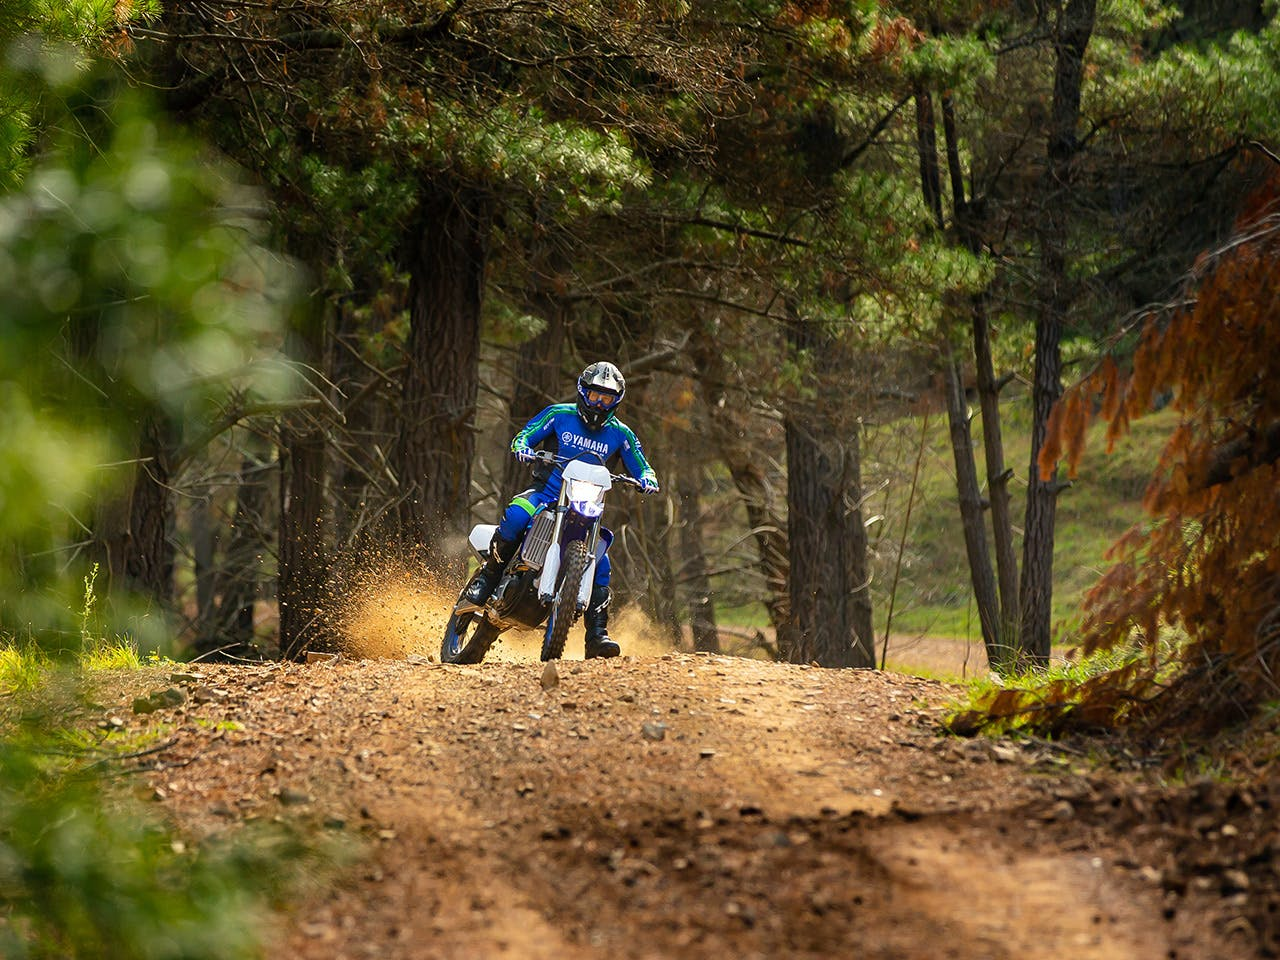 Yamaha WR250F in action on off road track